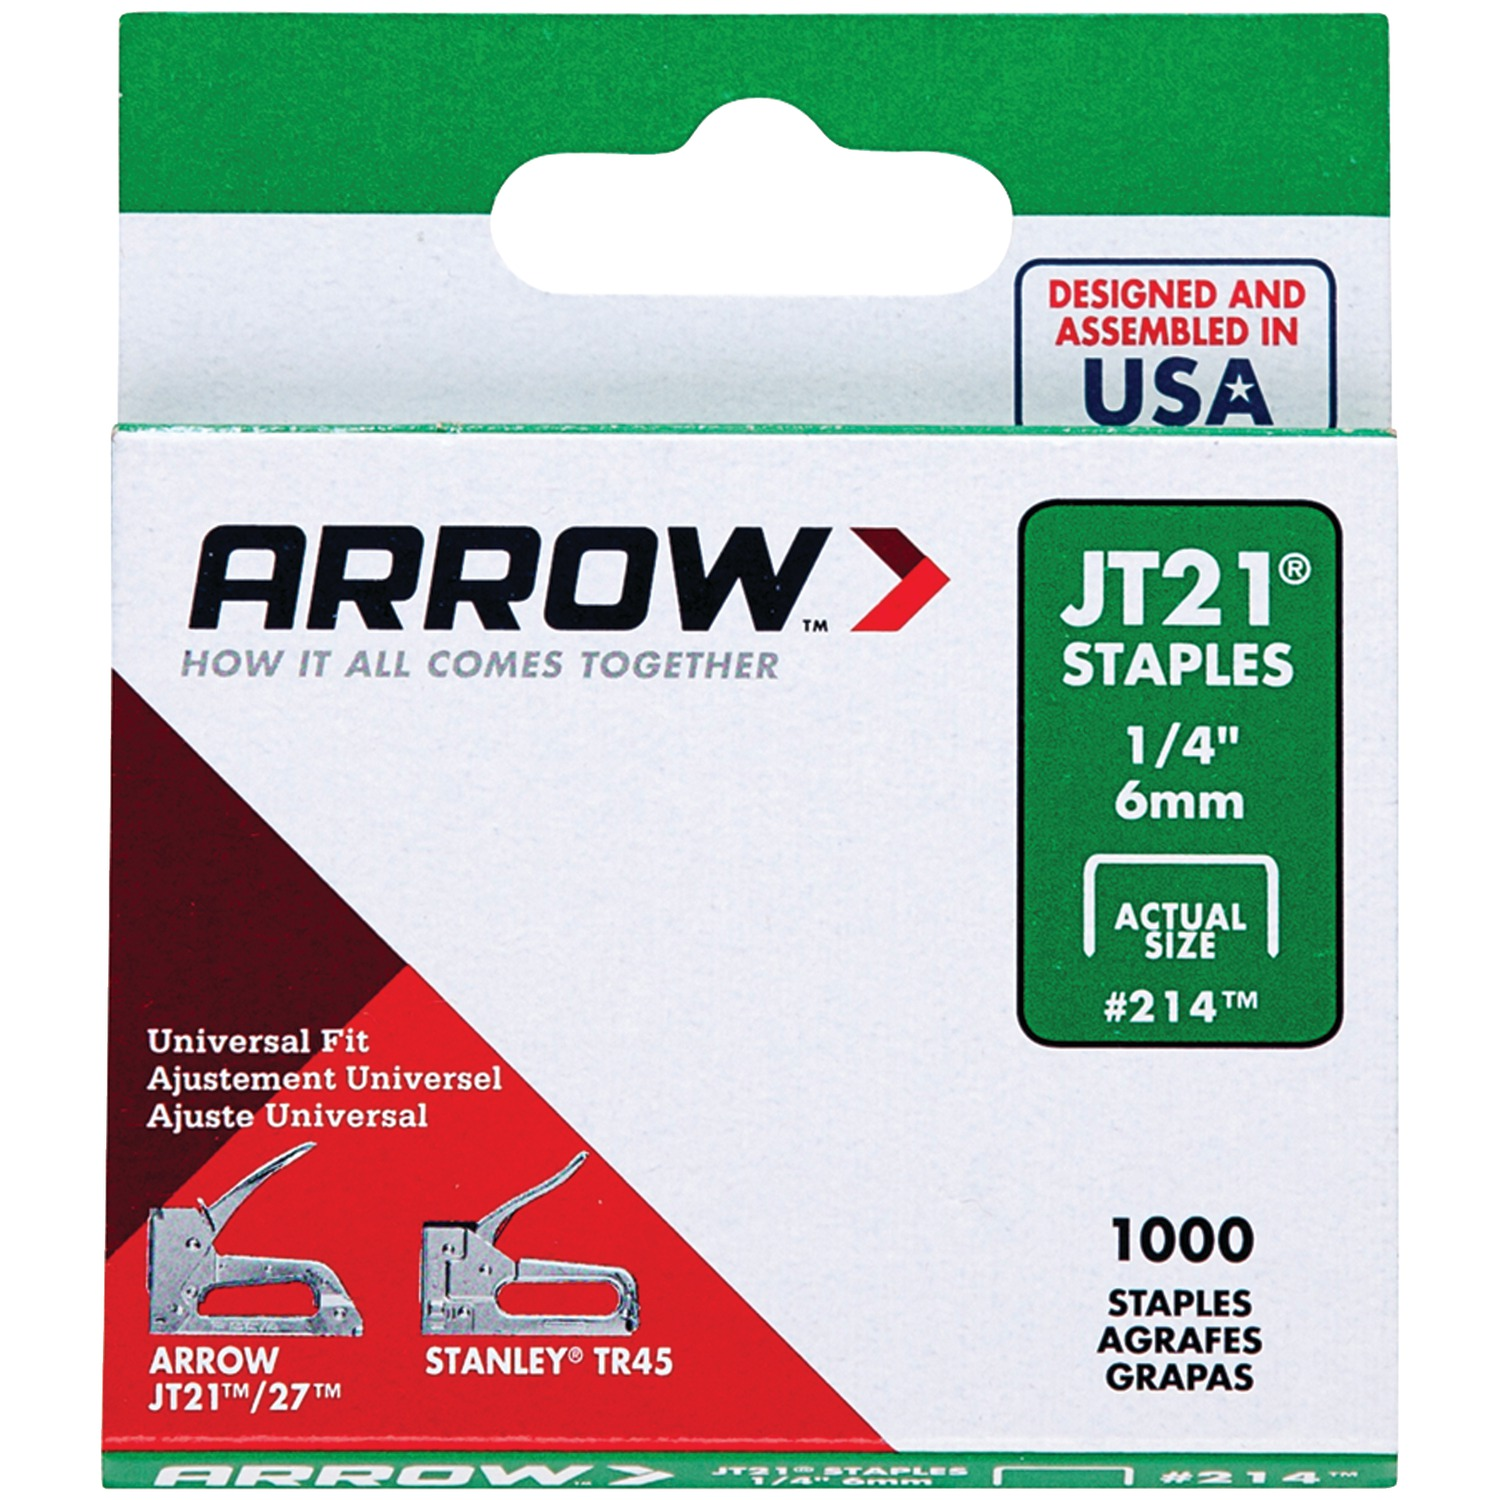 Arrow 1/4 inch T21 Staples, 1,000 Count